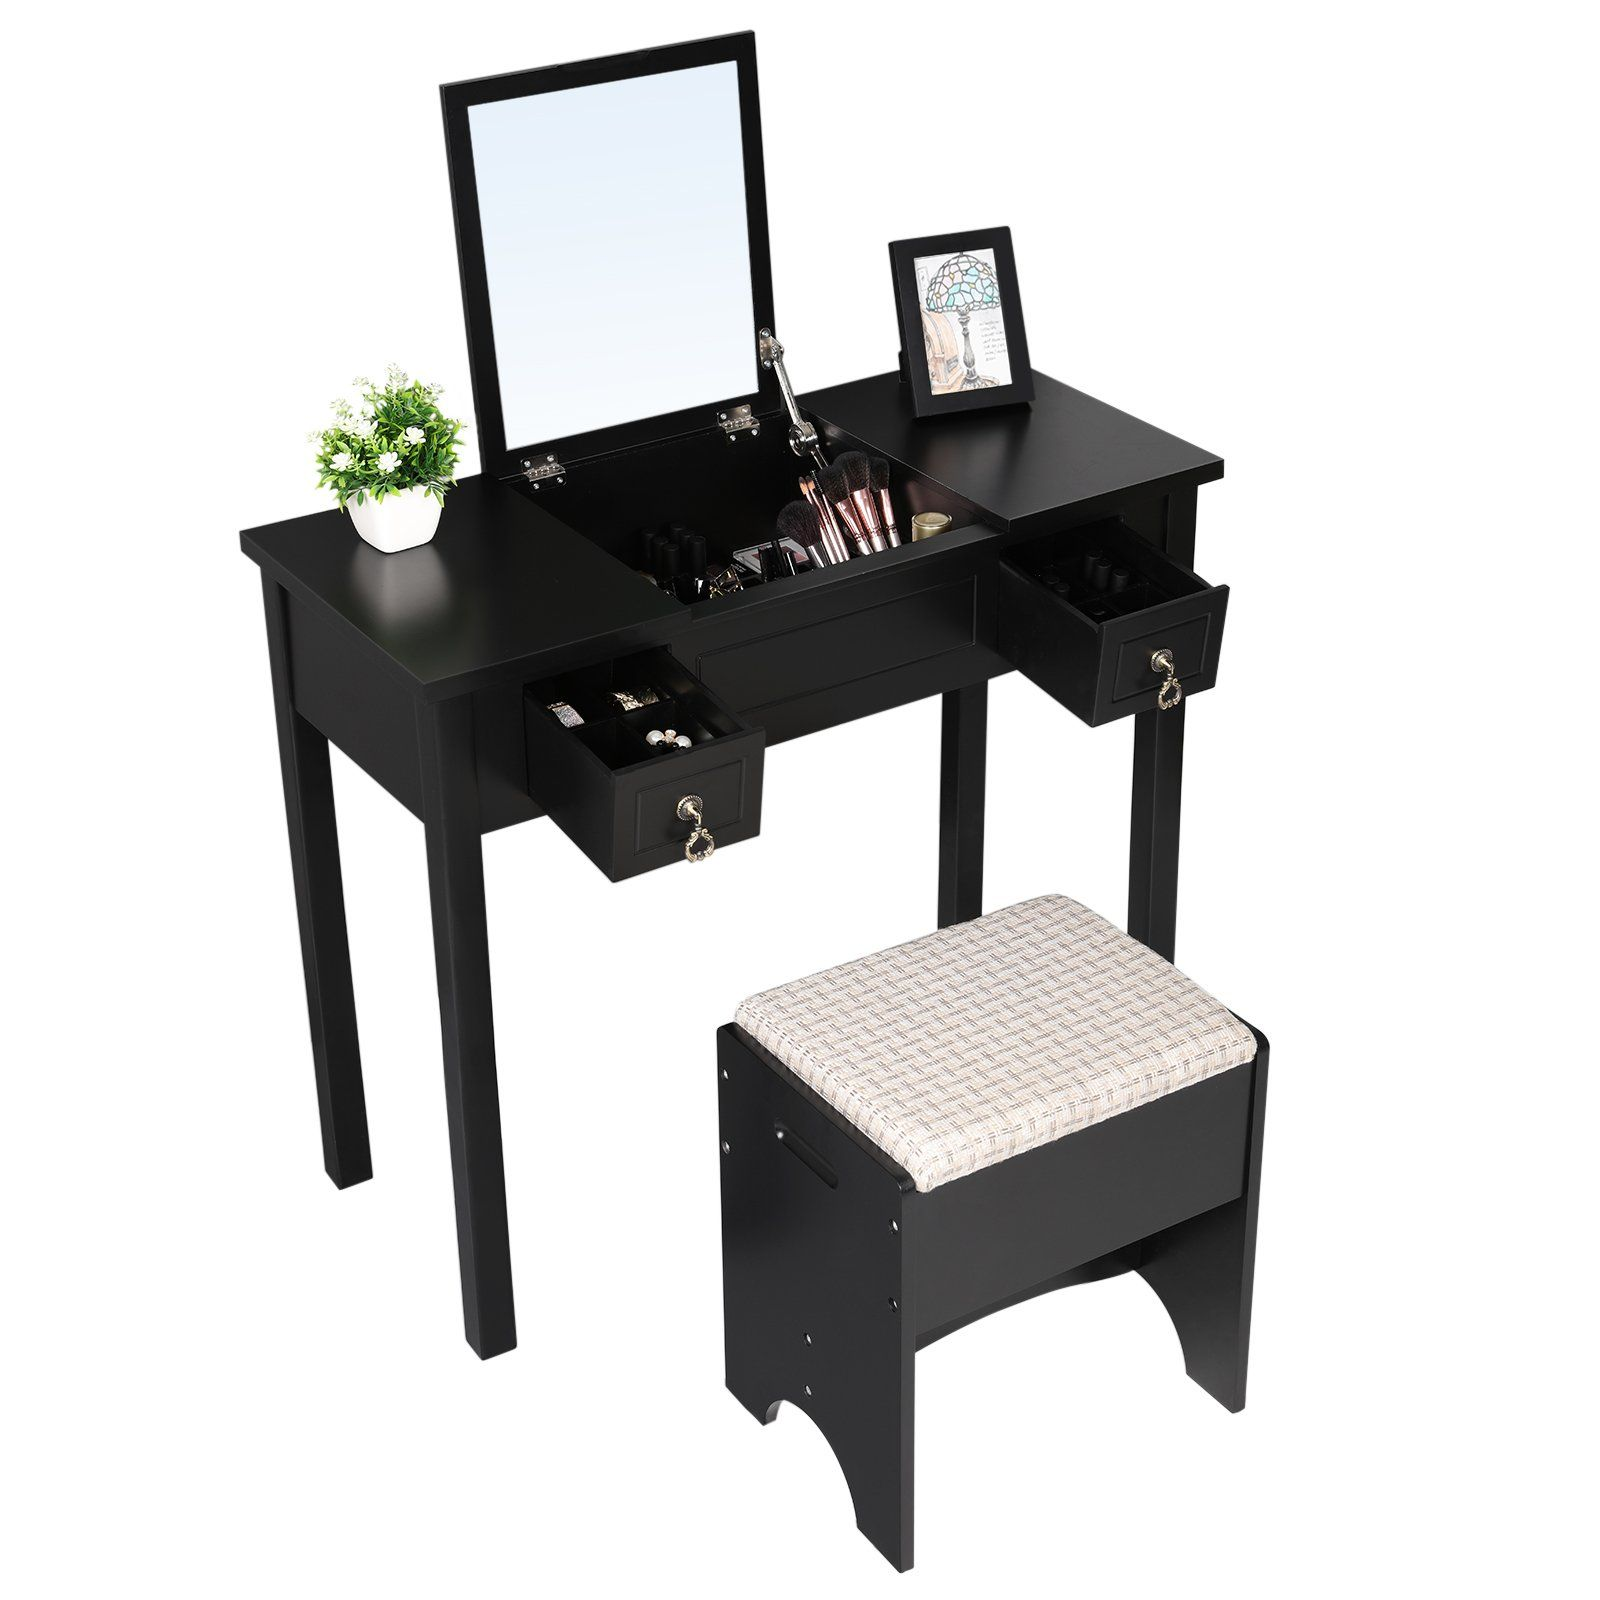 Songmics vanity set with flip top mirror cushioned stool makeup songmics vanity set with flip top mirror cushioned stool makeup dressing table 2 drawers 3 removable organizers black geotapseo Choice Image